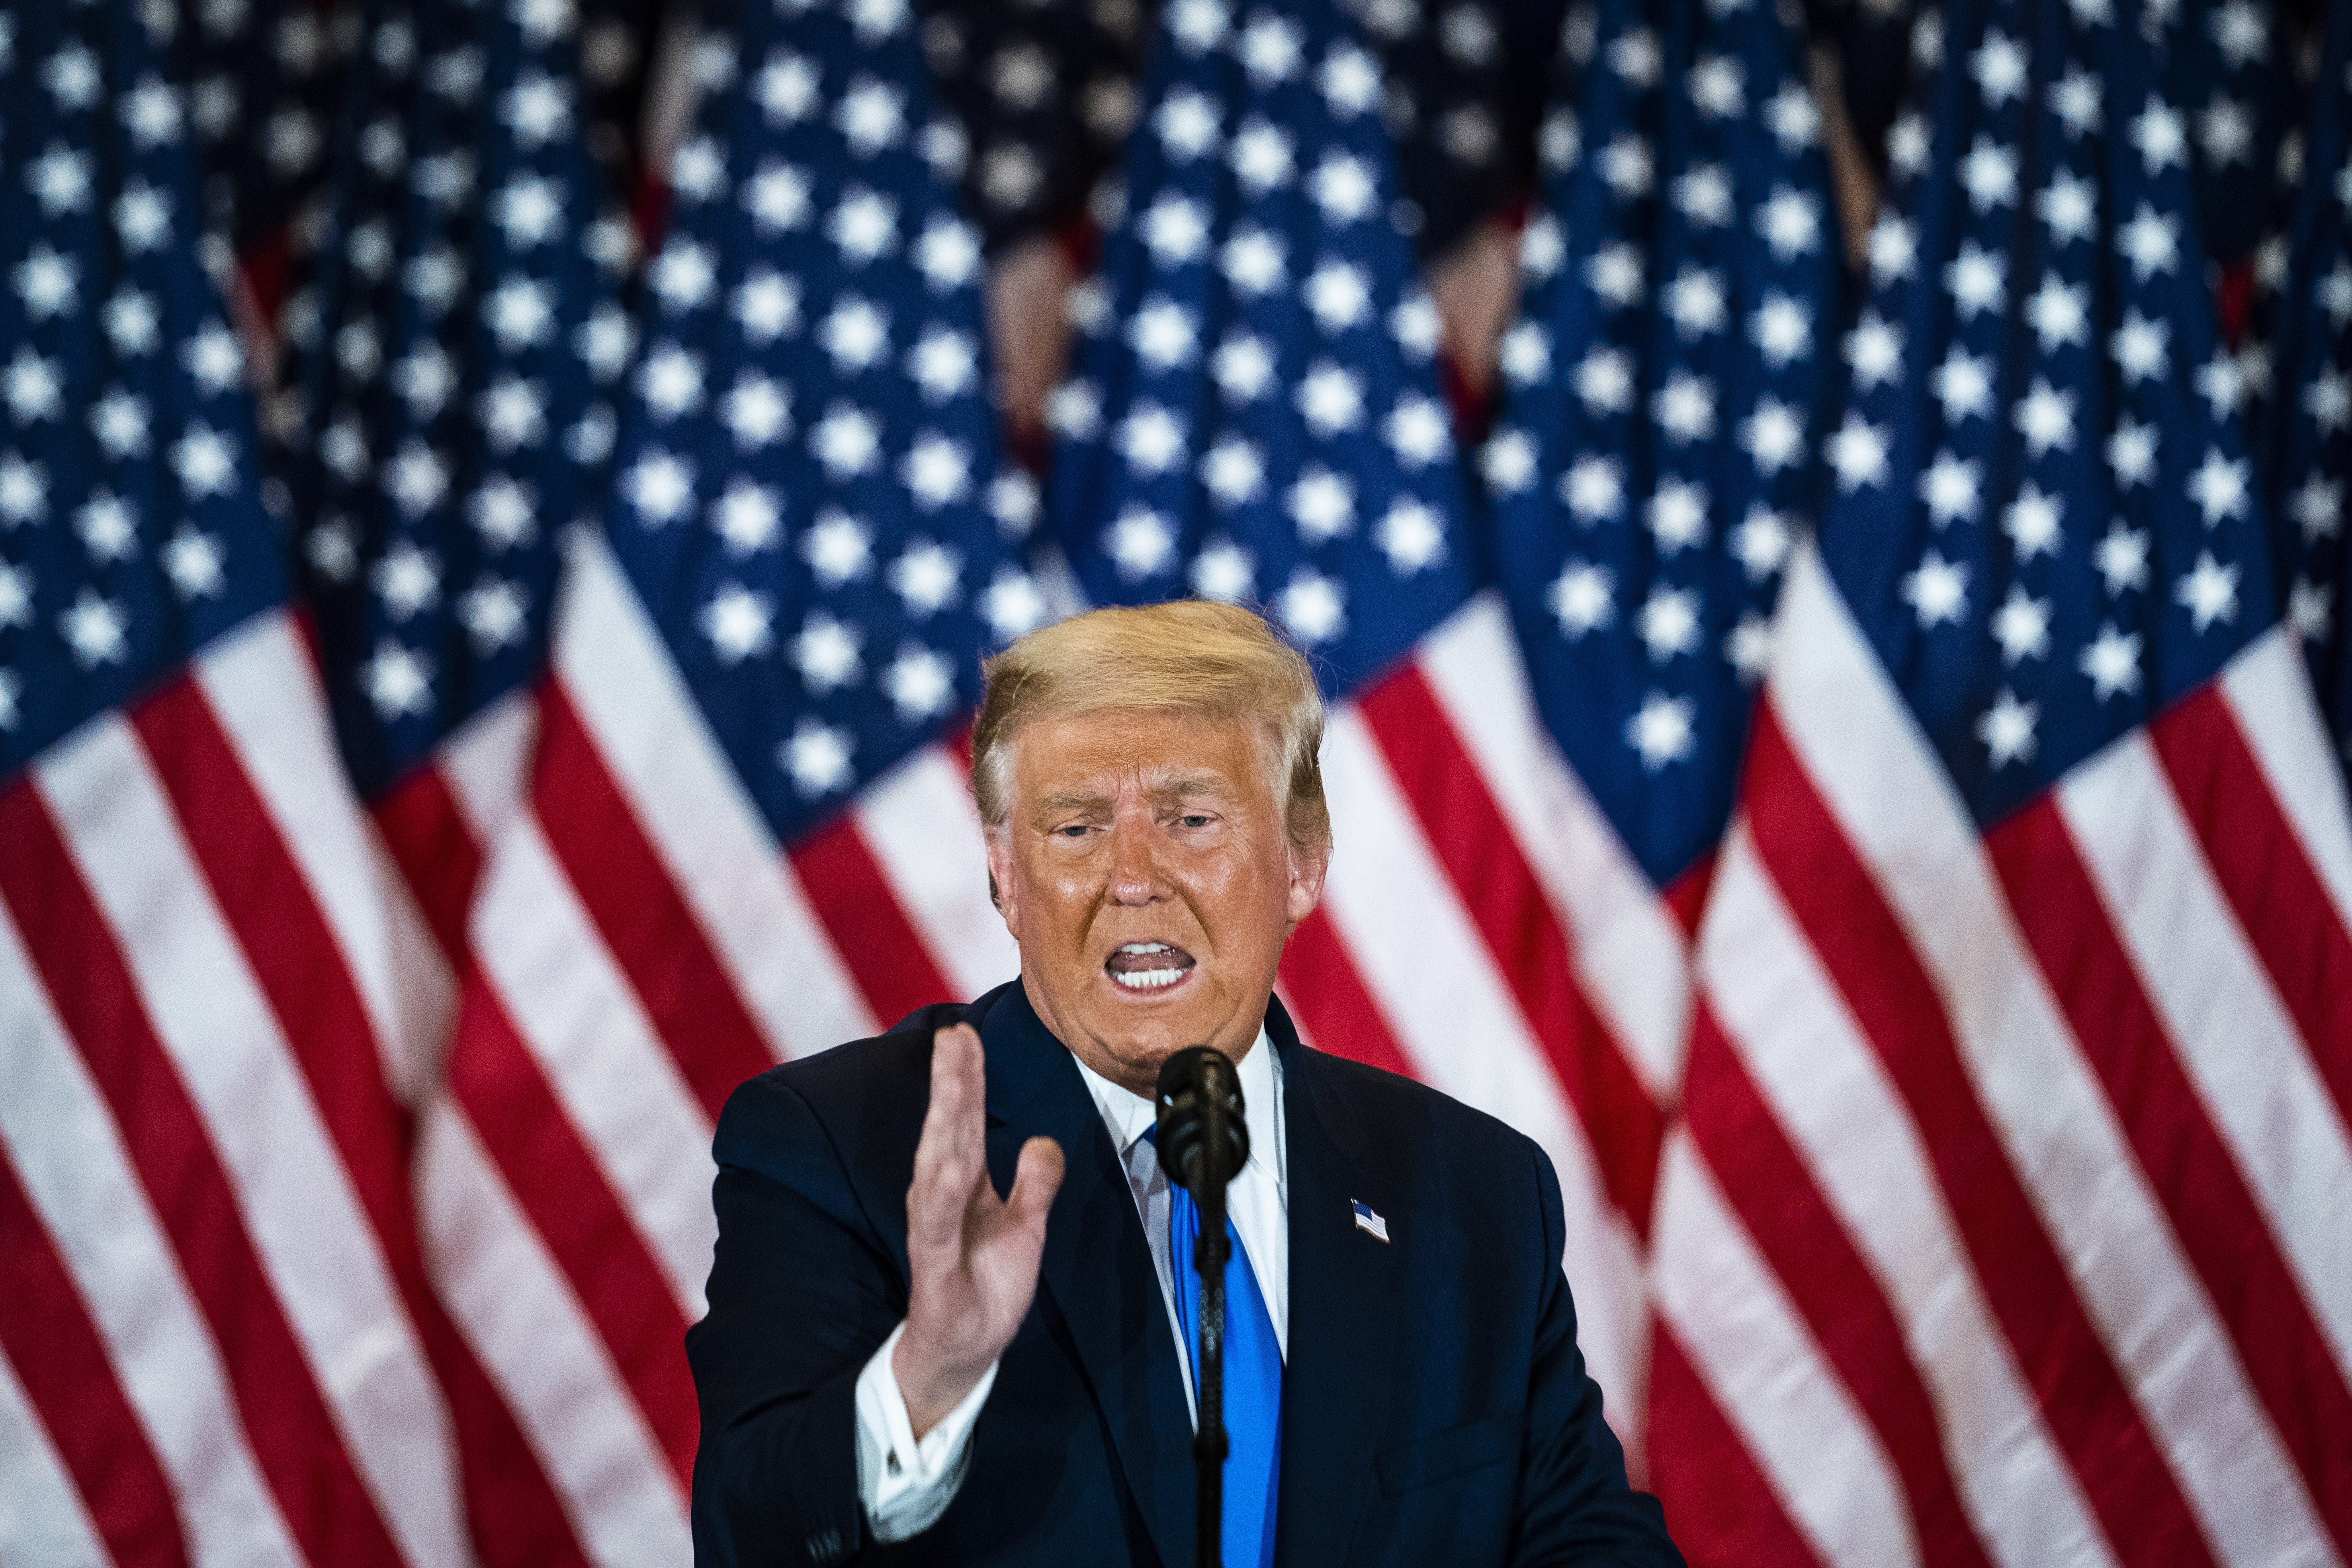 President Donald J. Trump speaks during an election night event in the East Room at the White House early in the morning on Nov 04, 2020 in Washington, DC. (Jabin Botsford/The Washington Post via Getty Images)